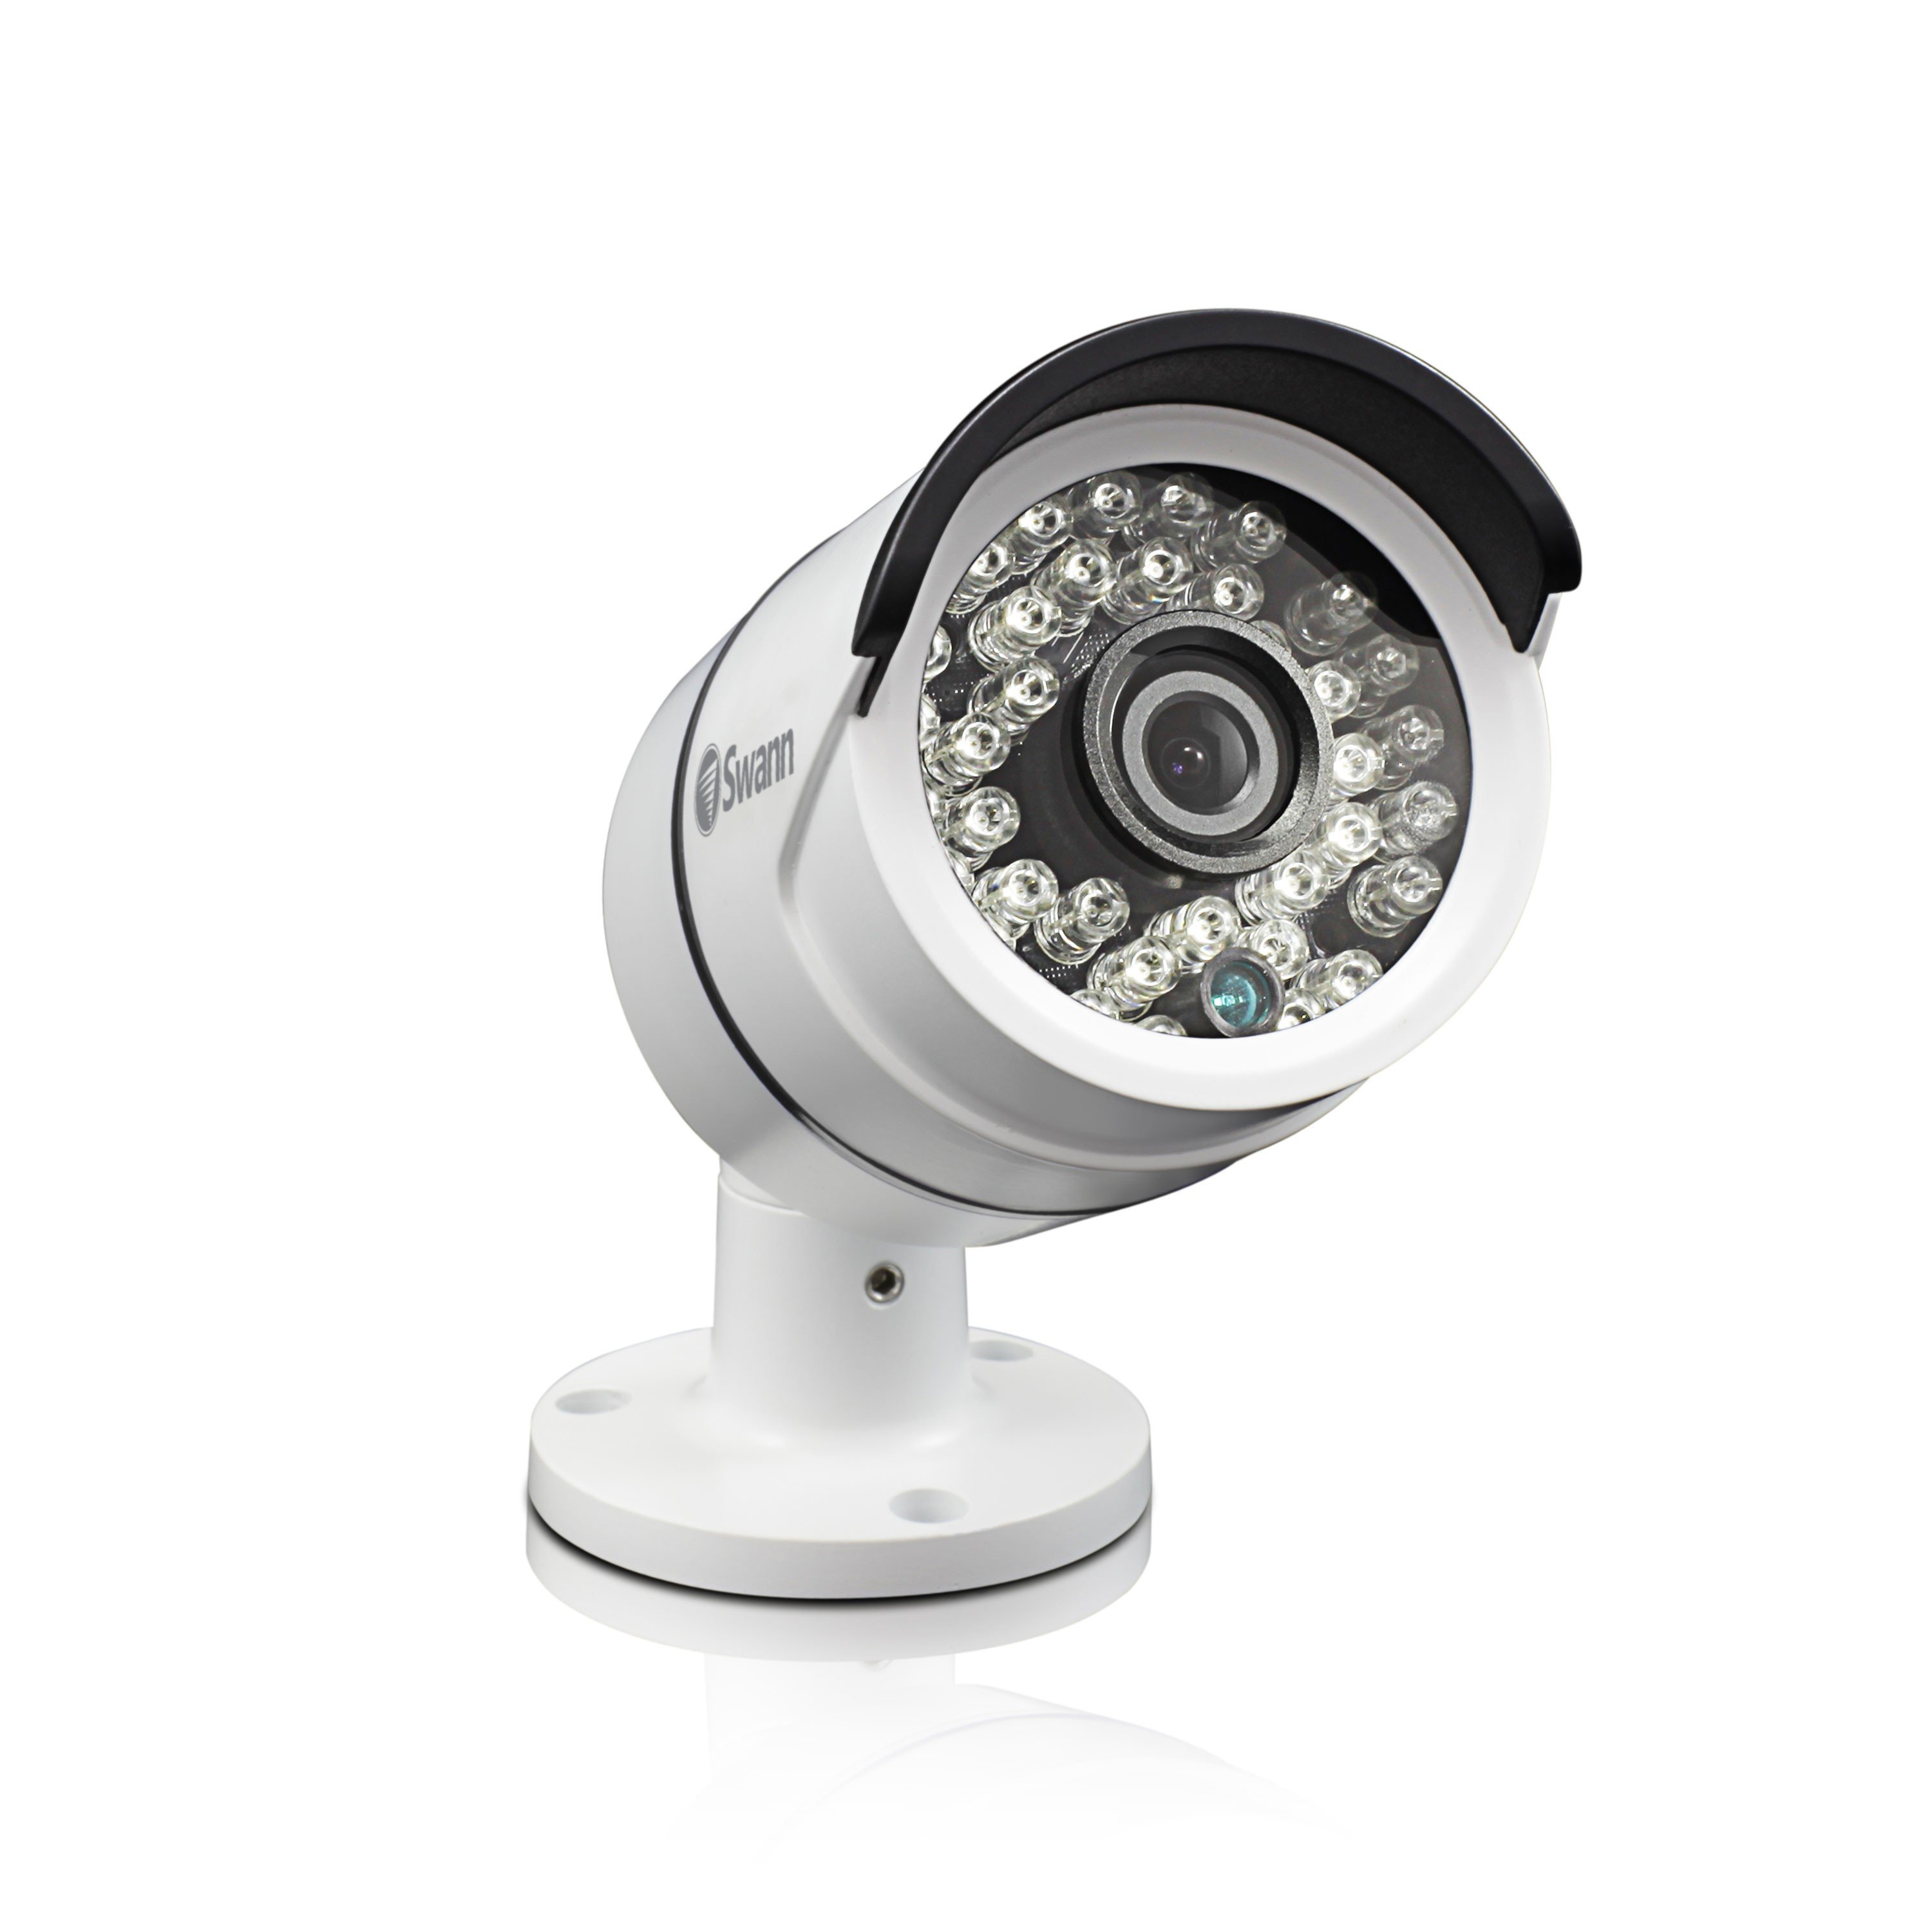 SWPRO-H855CAM Swann Outdoor Security Camera: 1080p Full HD Bullet with IR Night Vision - PRO-H855 -